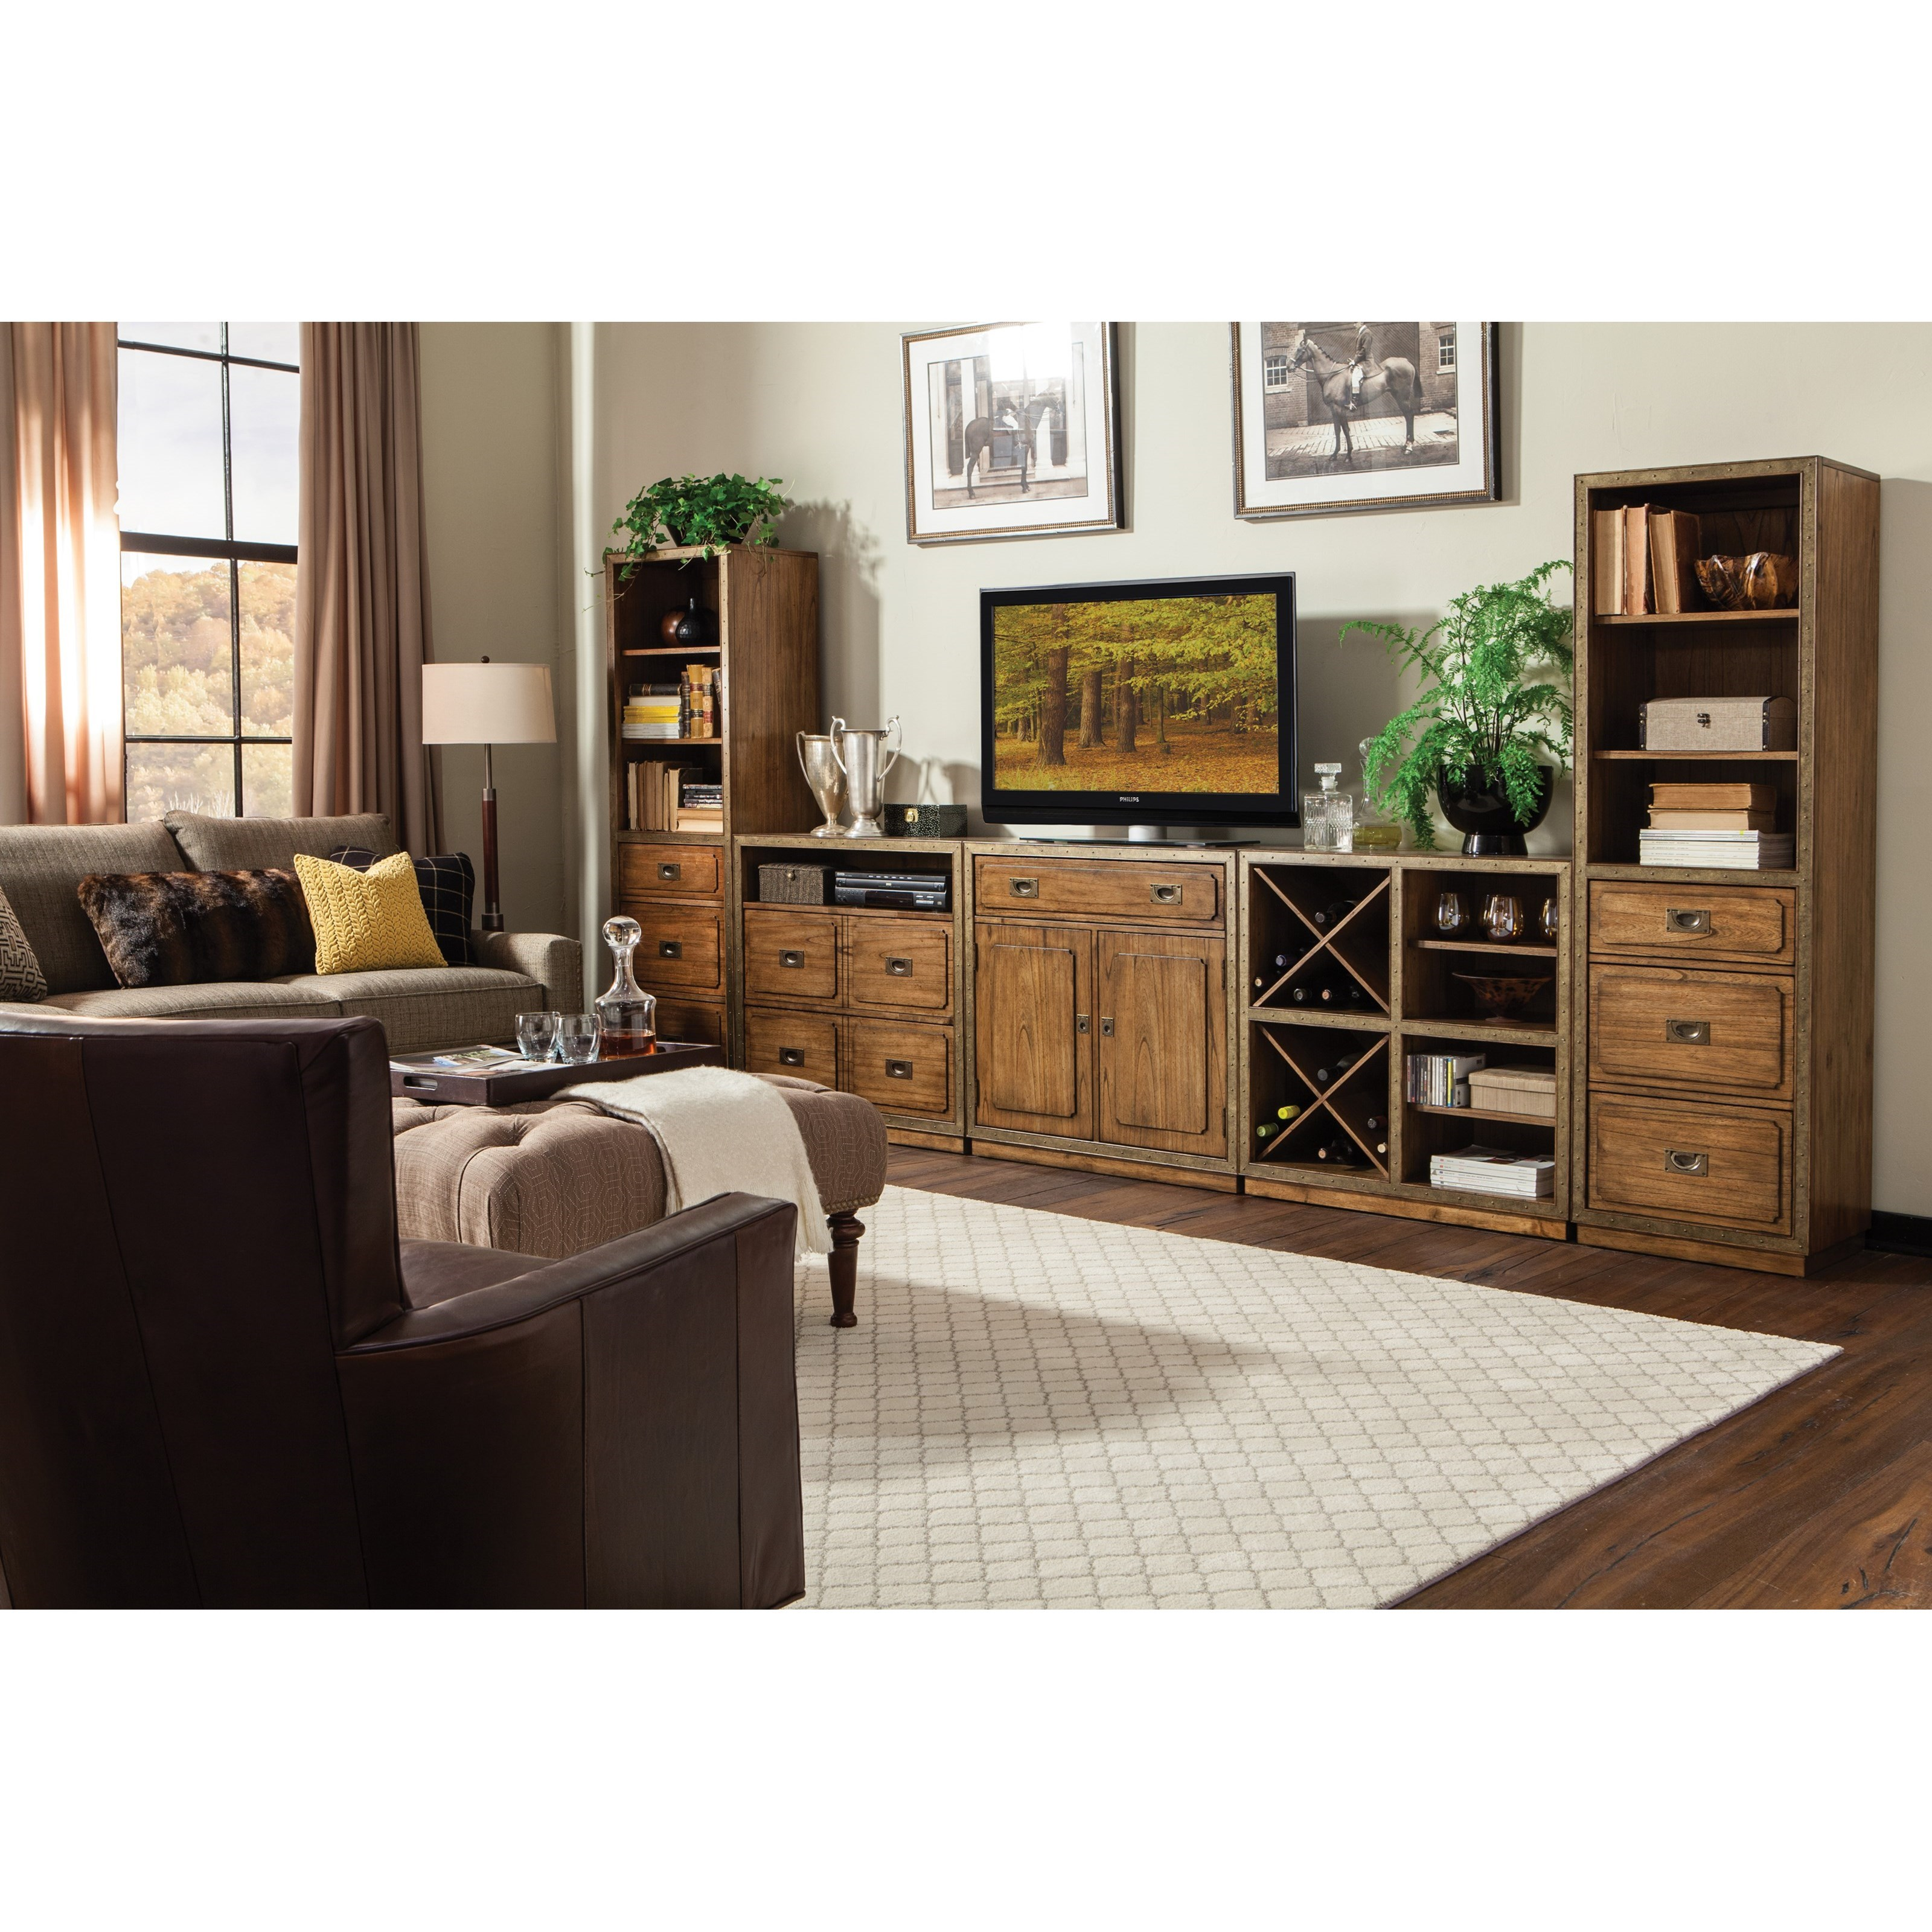 4 Drawer Storage Unit With Open Electronic Storage Area